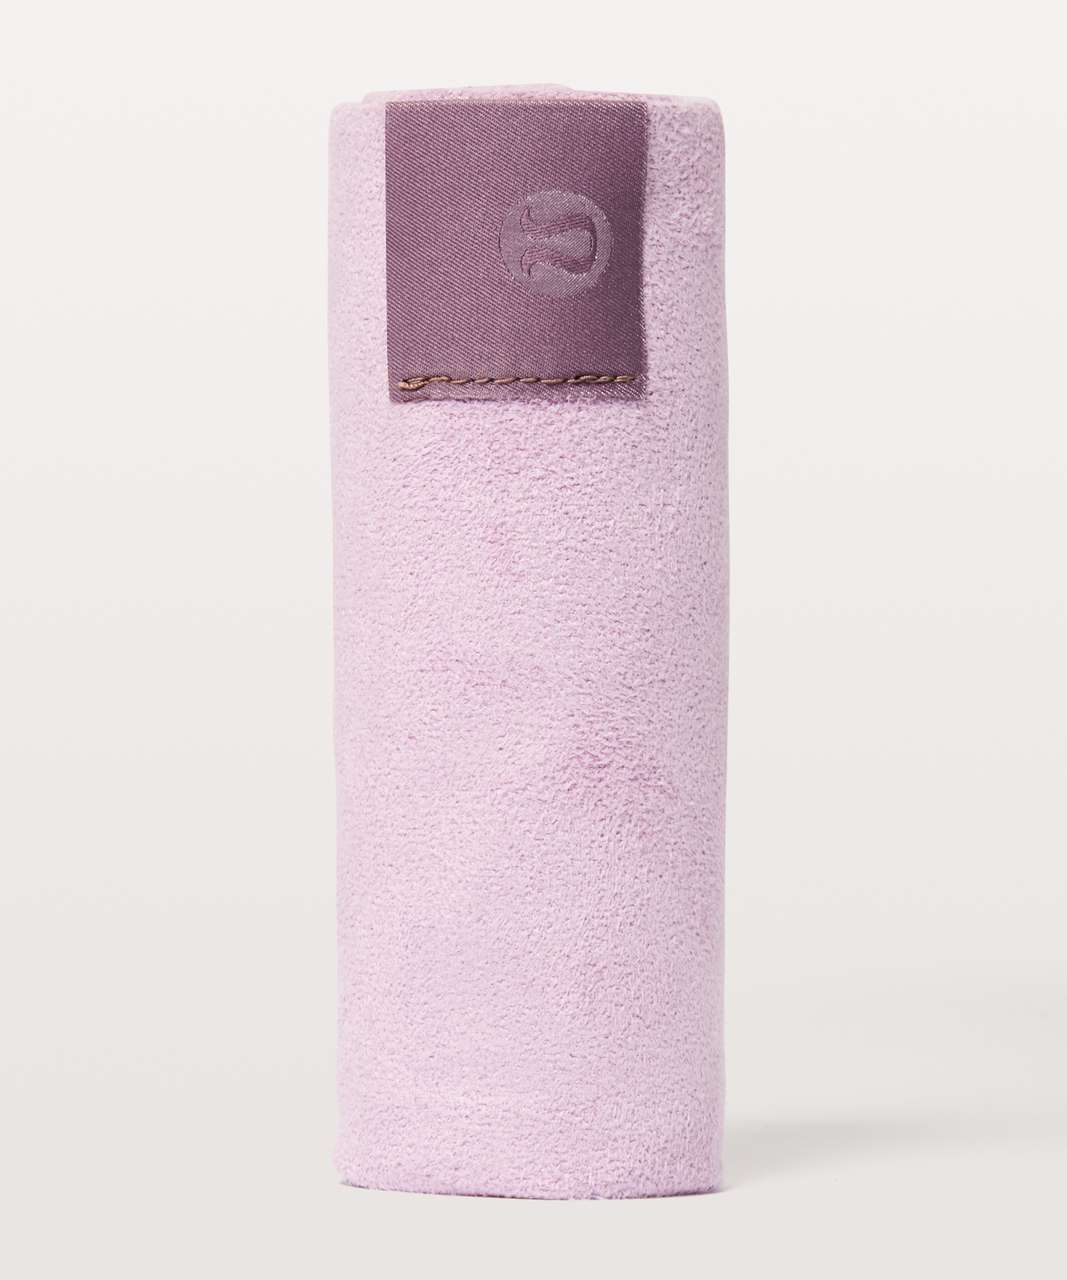 Lululemon The (Small) Towel - Violetta